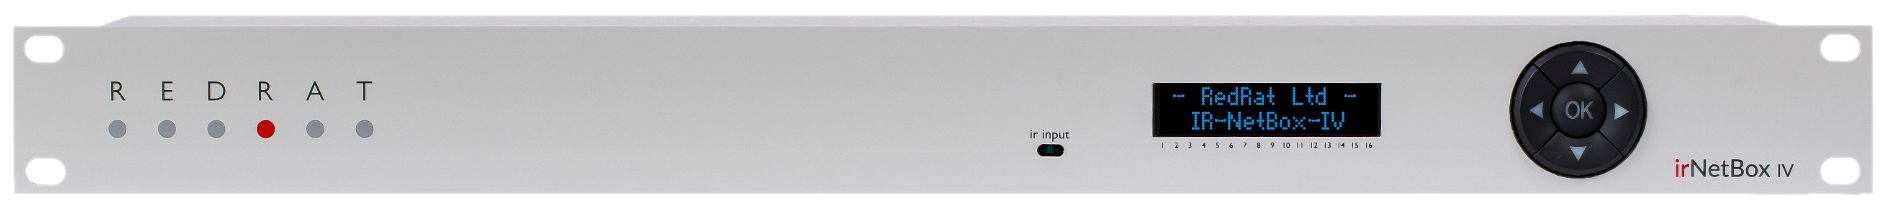 irNetBox IV Front